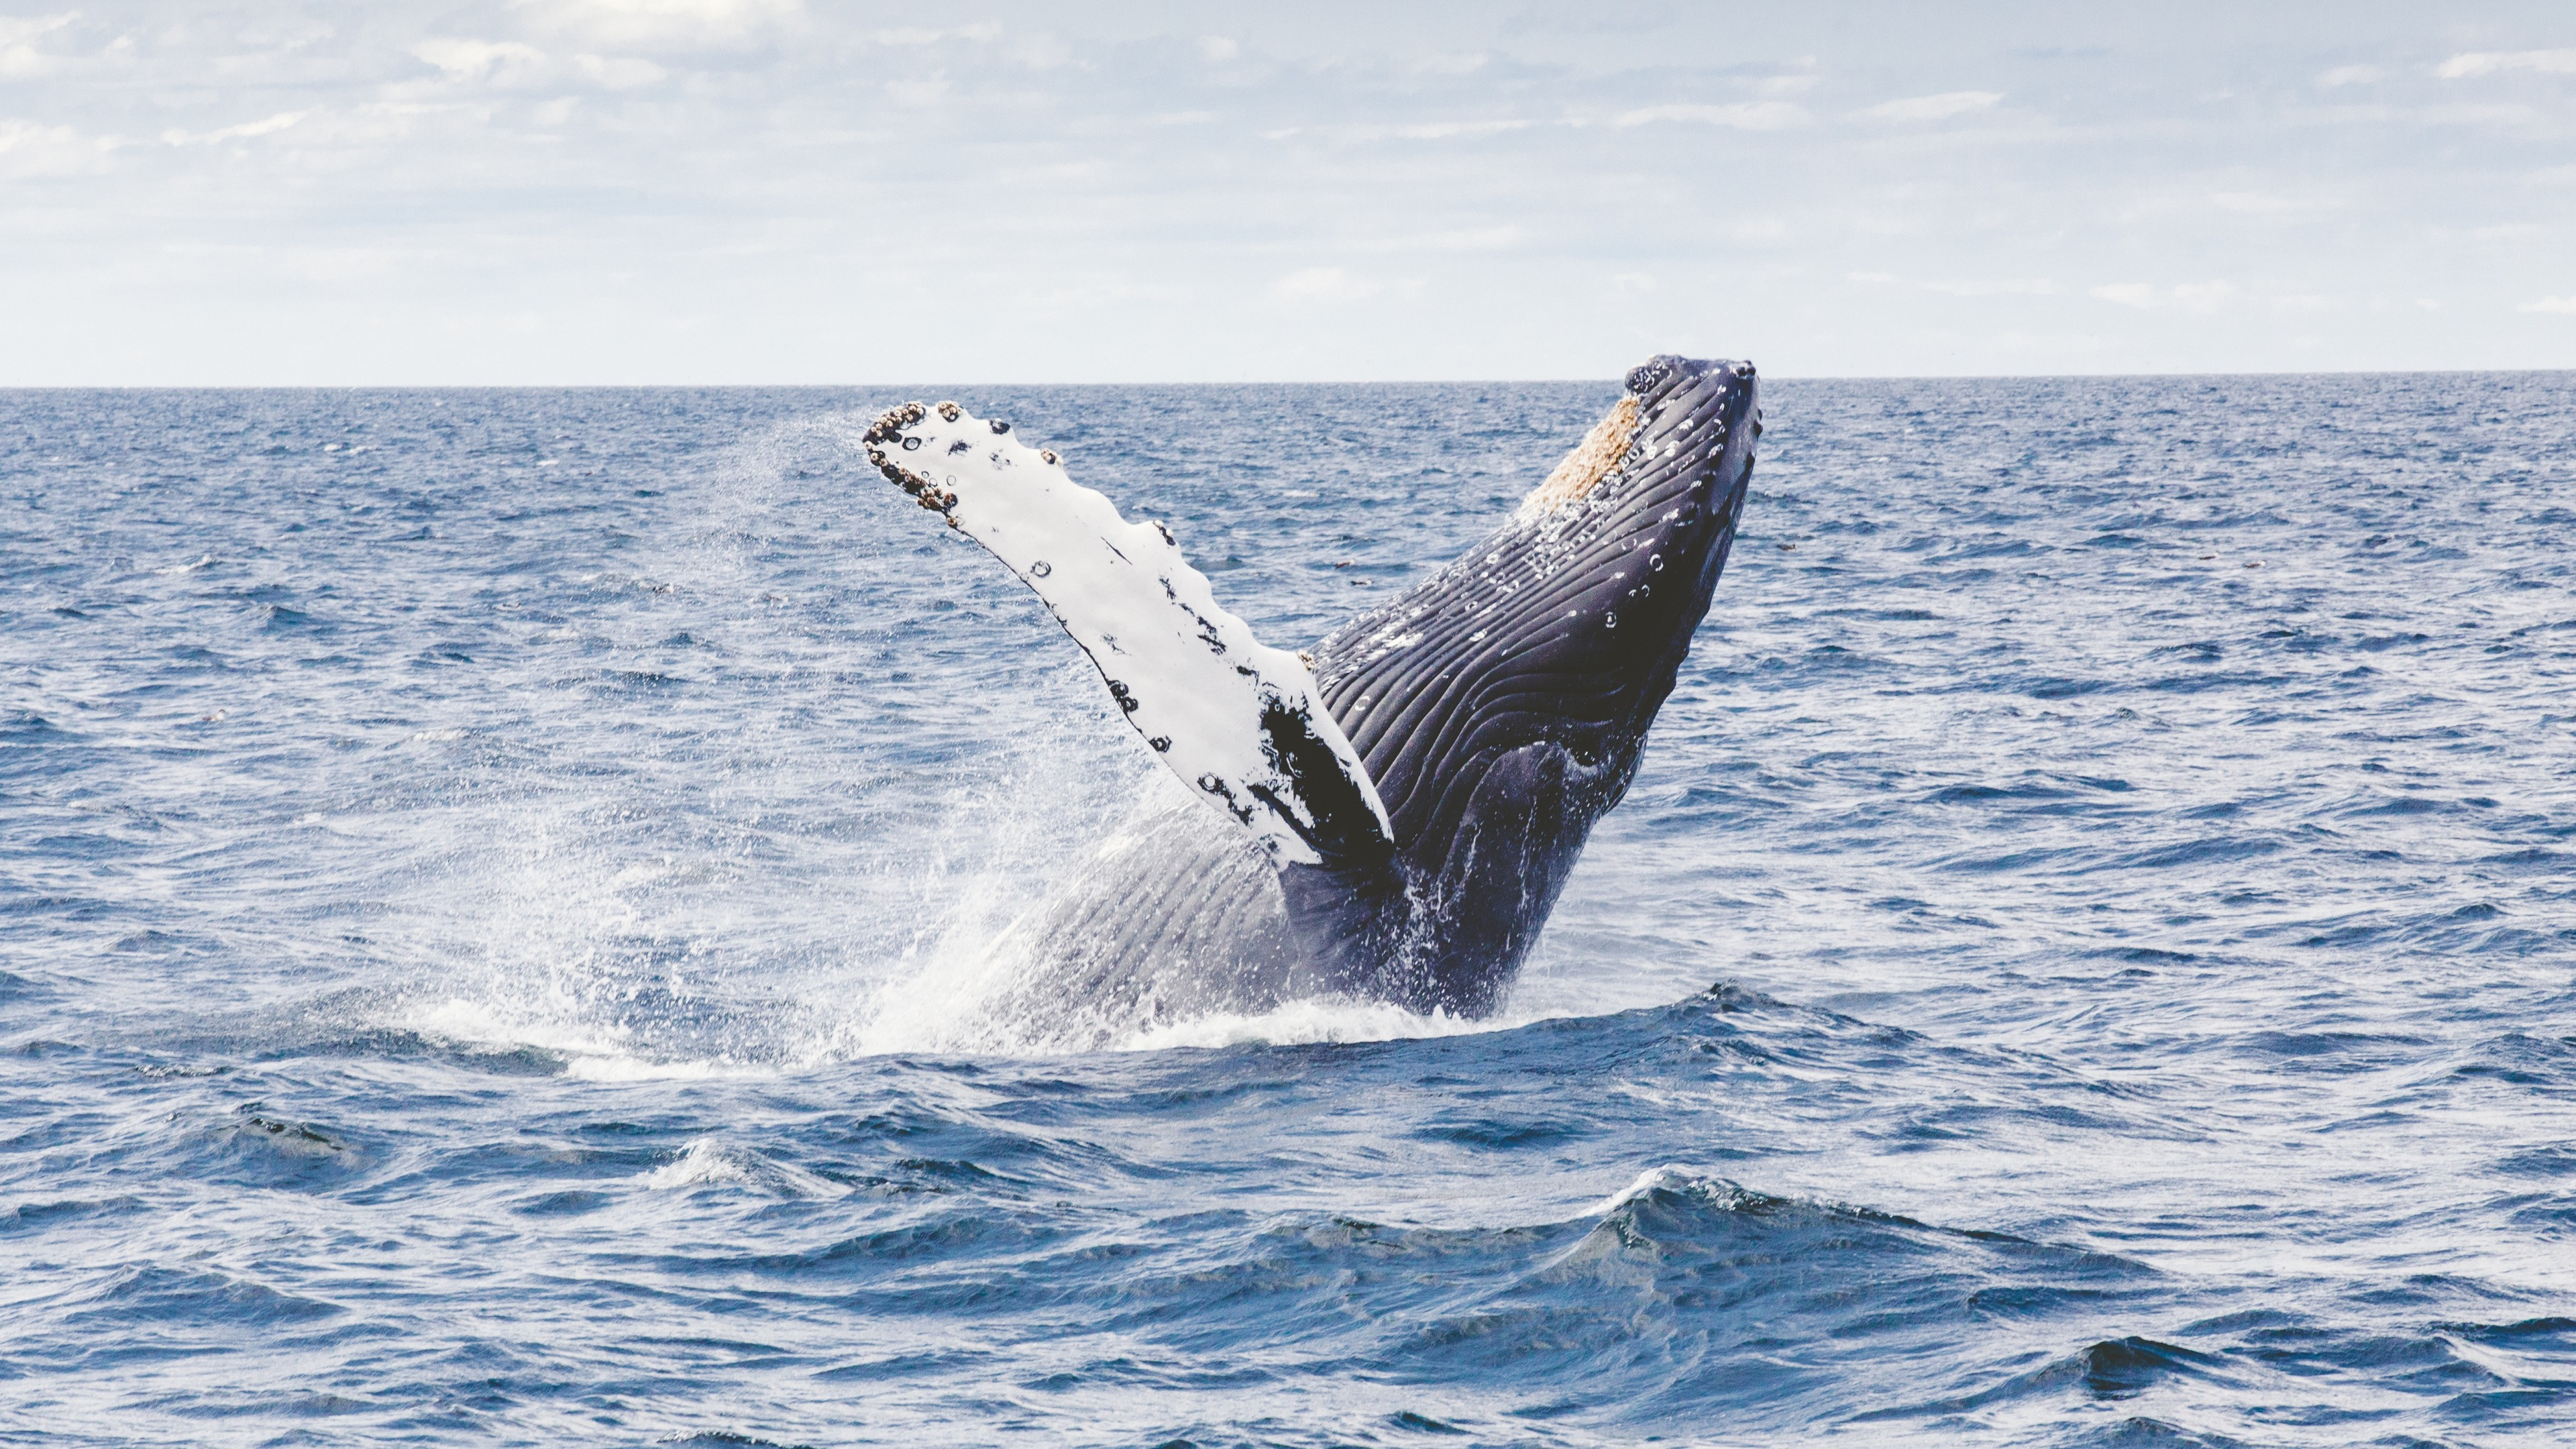 Wallpaper Whale 5k 4k Wallpaper 8k Ocean Nature 12586